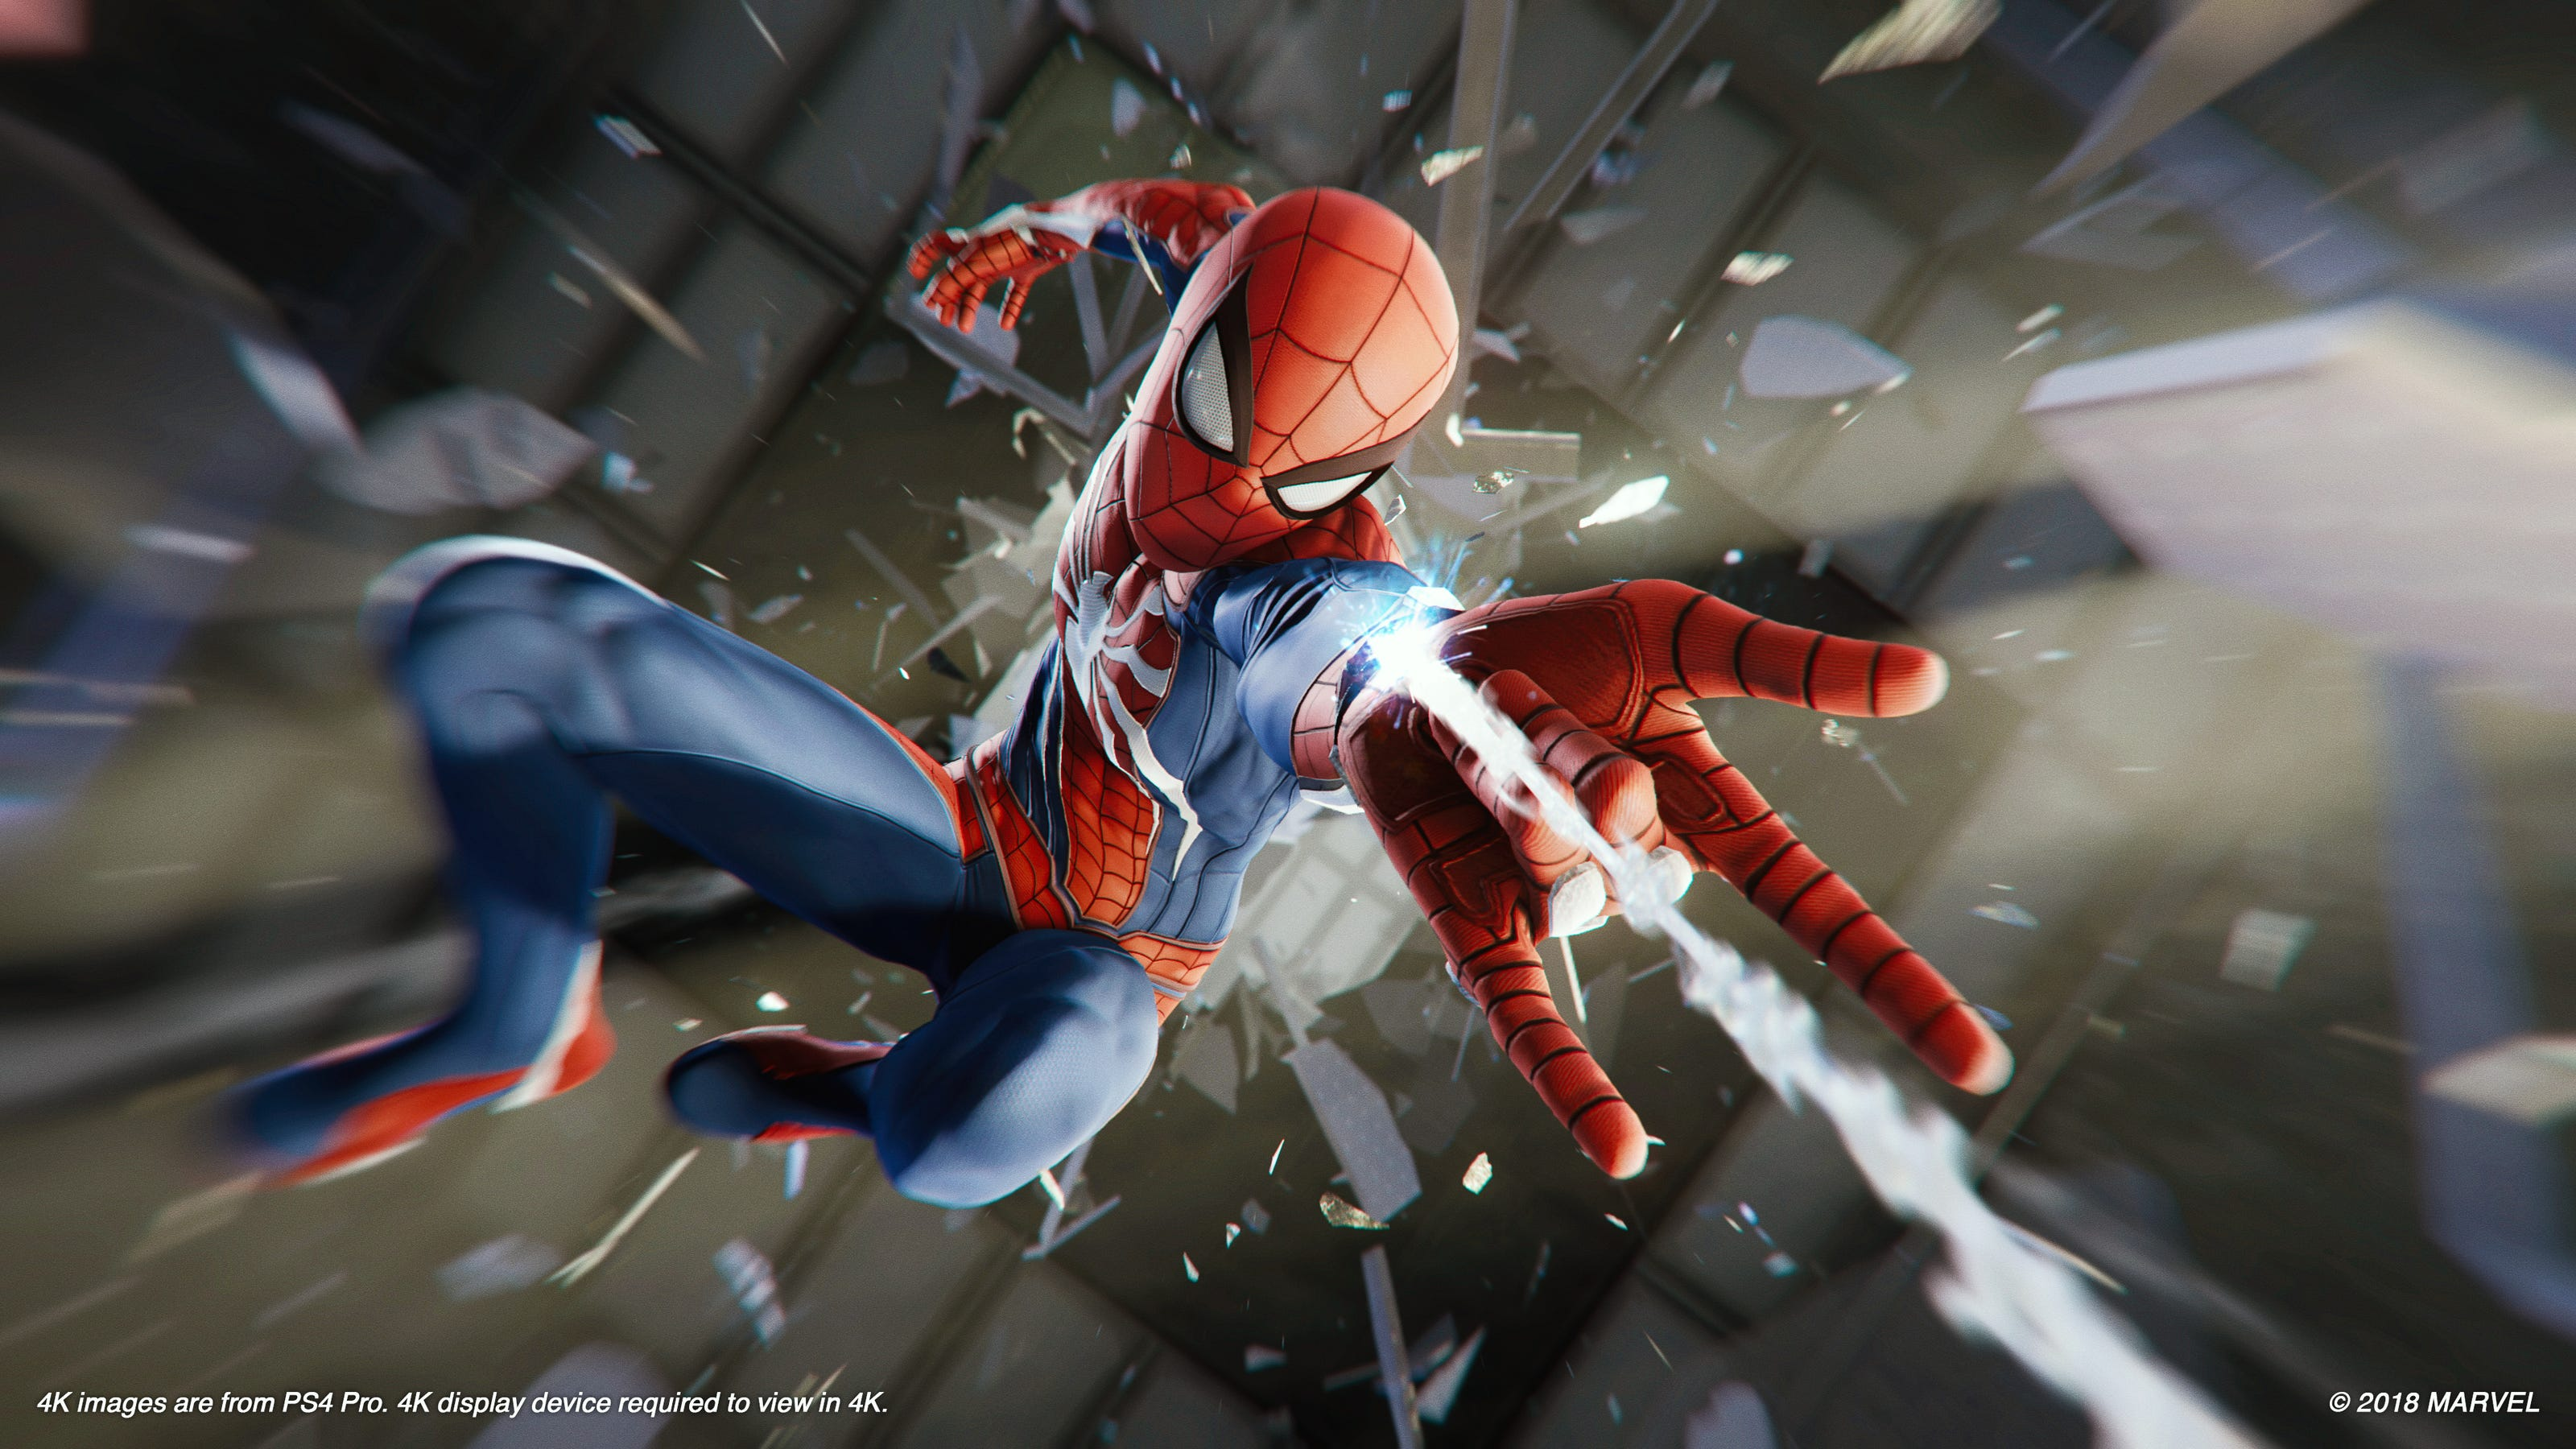 Marvel's 'Spider-Man' PS4 sells record 3.3 million copies in opening